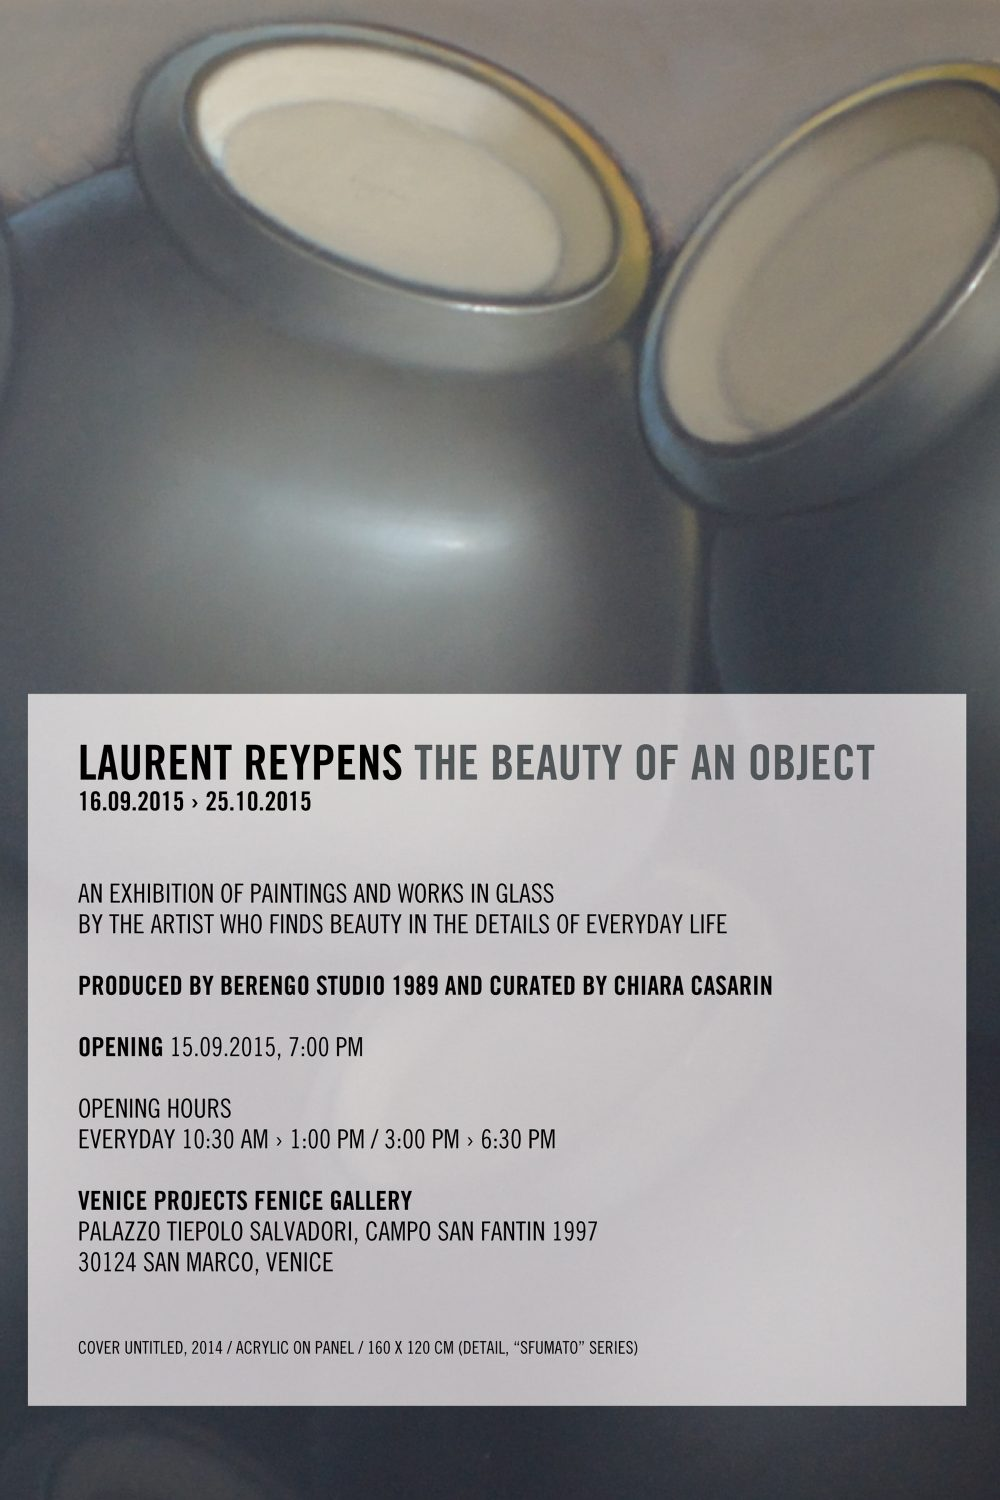 THE BEAUTY OF AN OBJECT / L.REYPENS